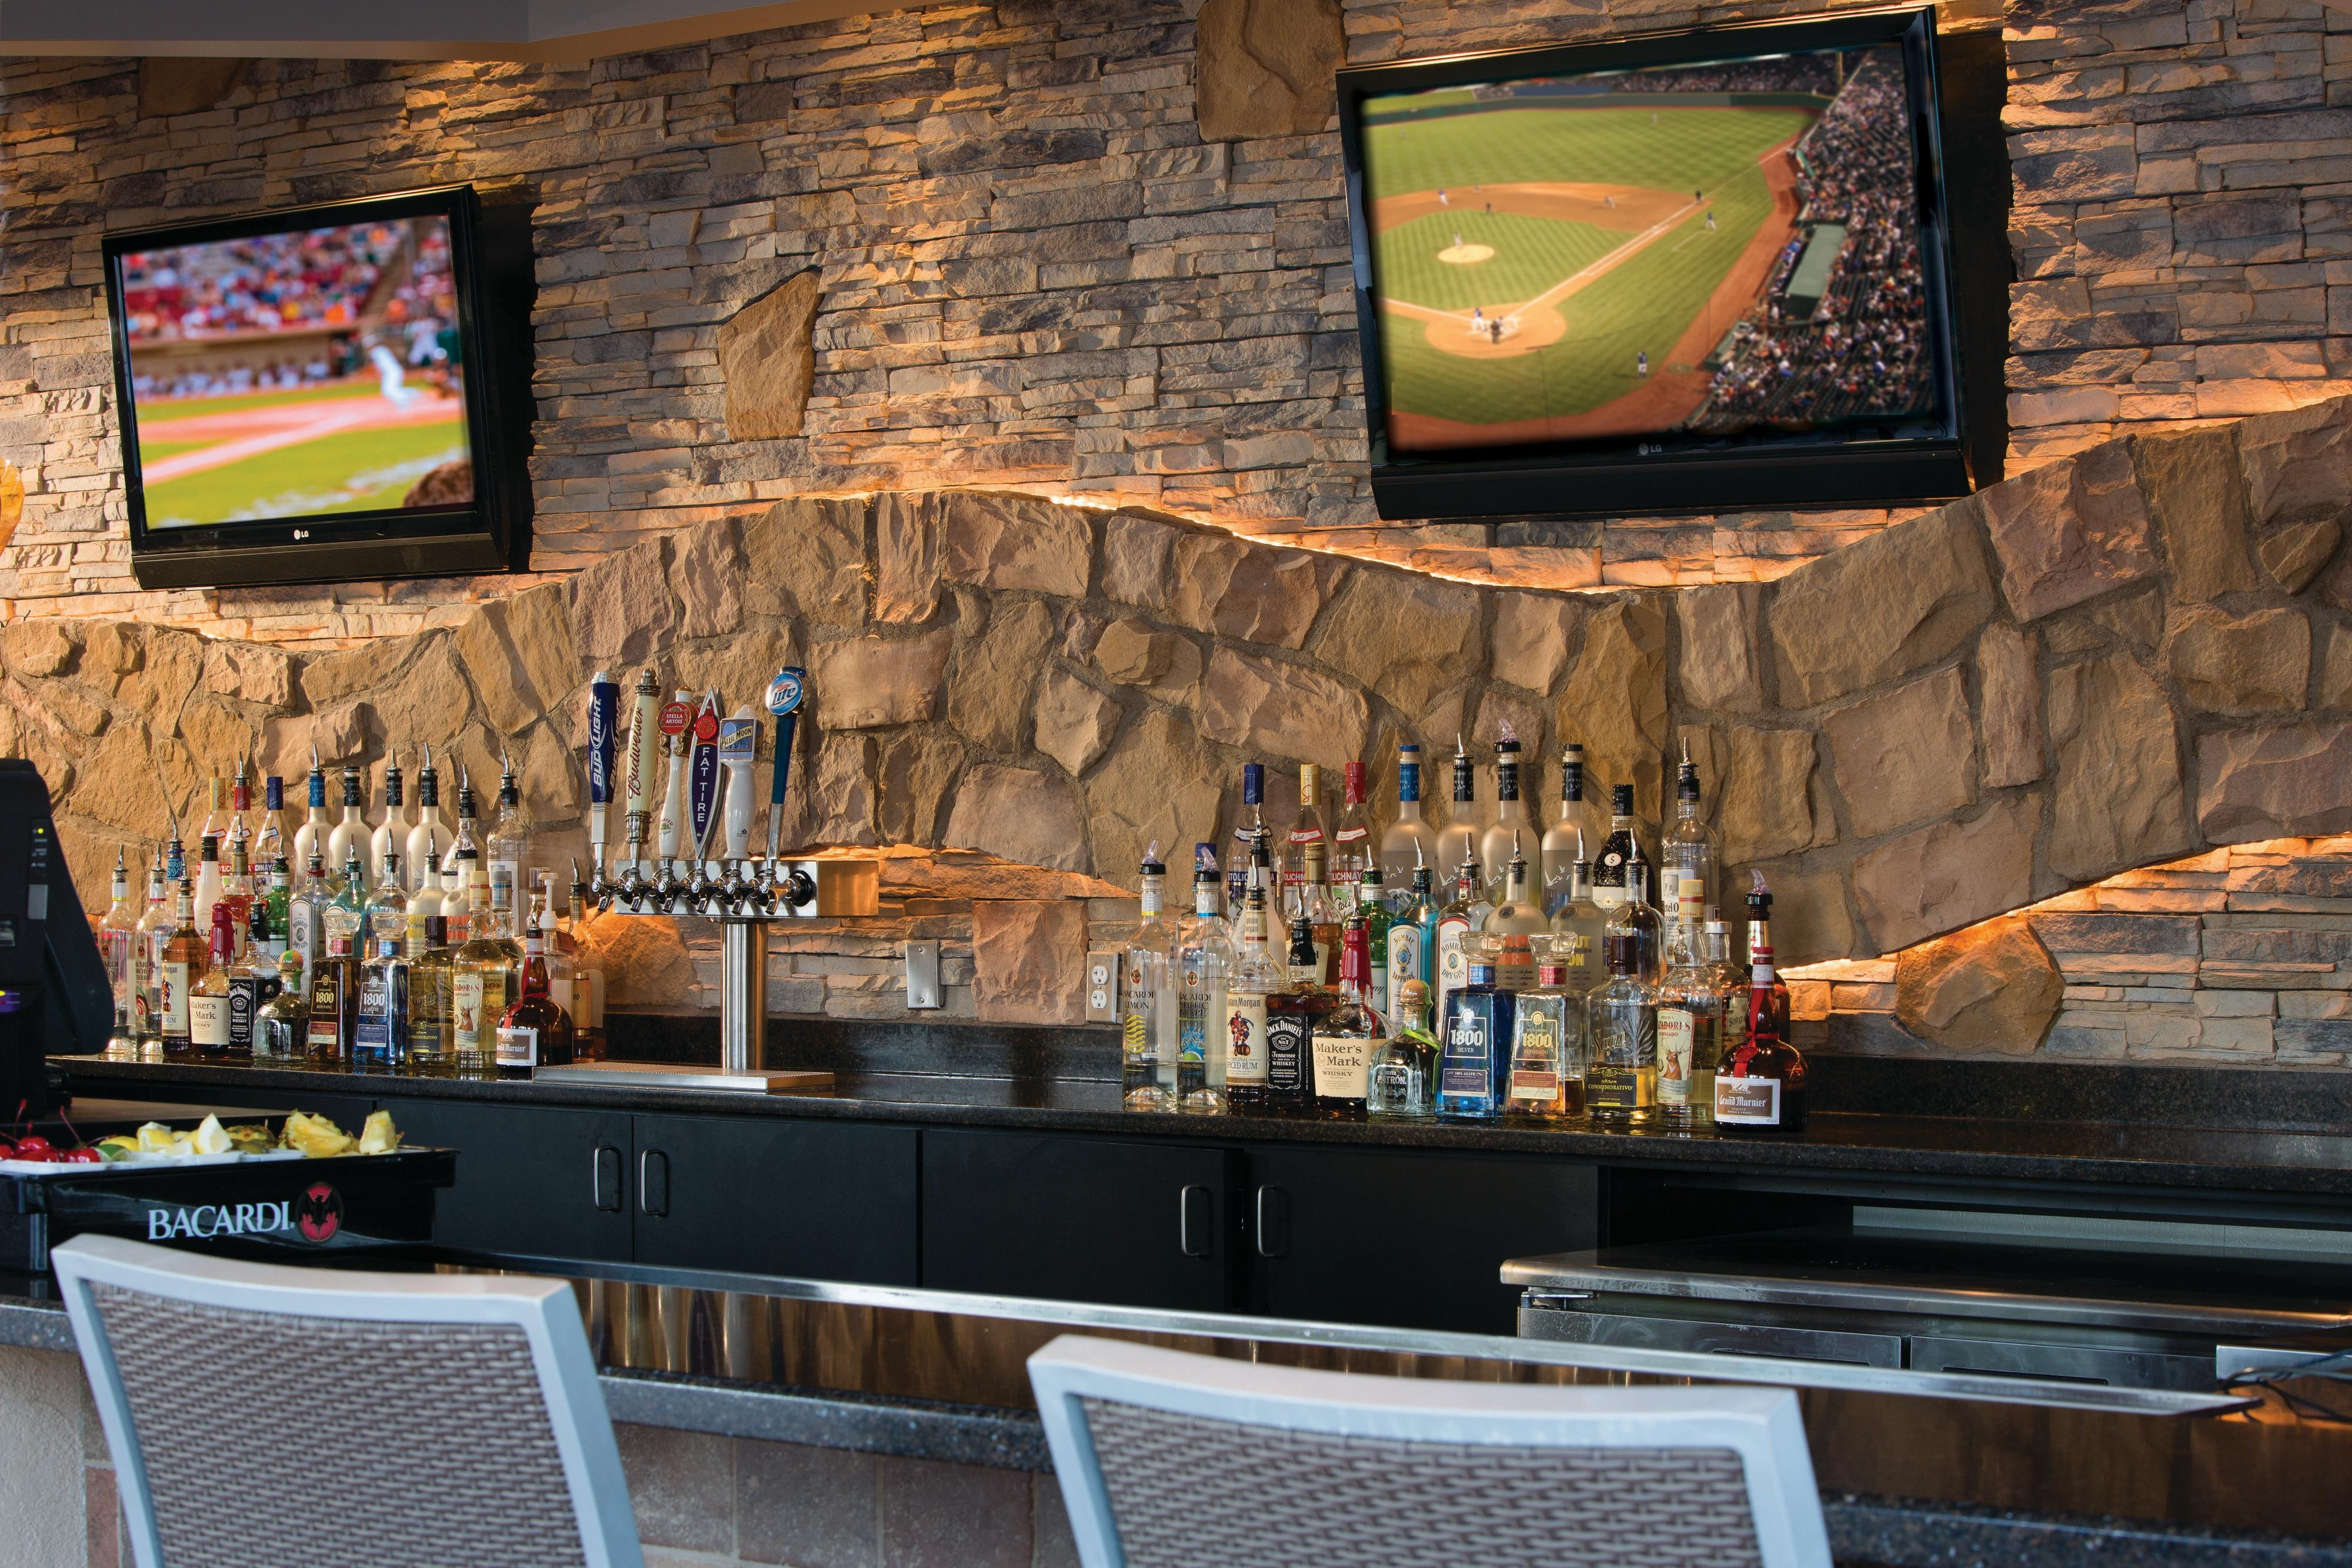 Water's Edge Bar & Grill